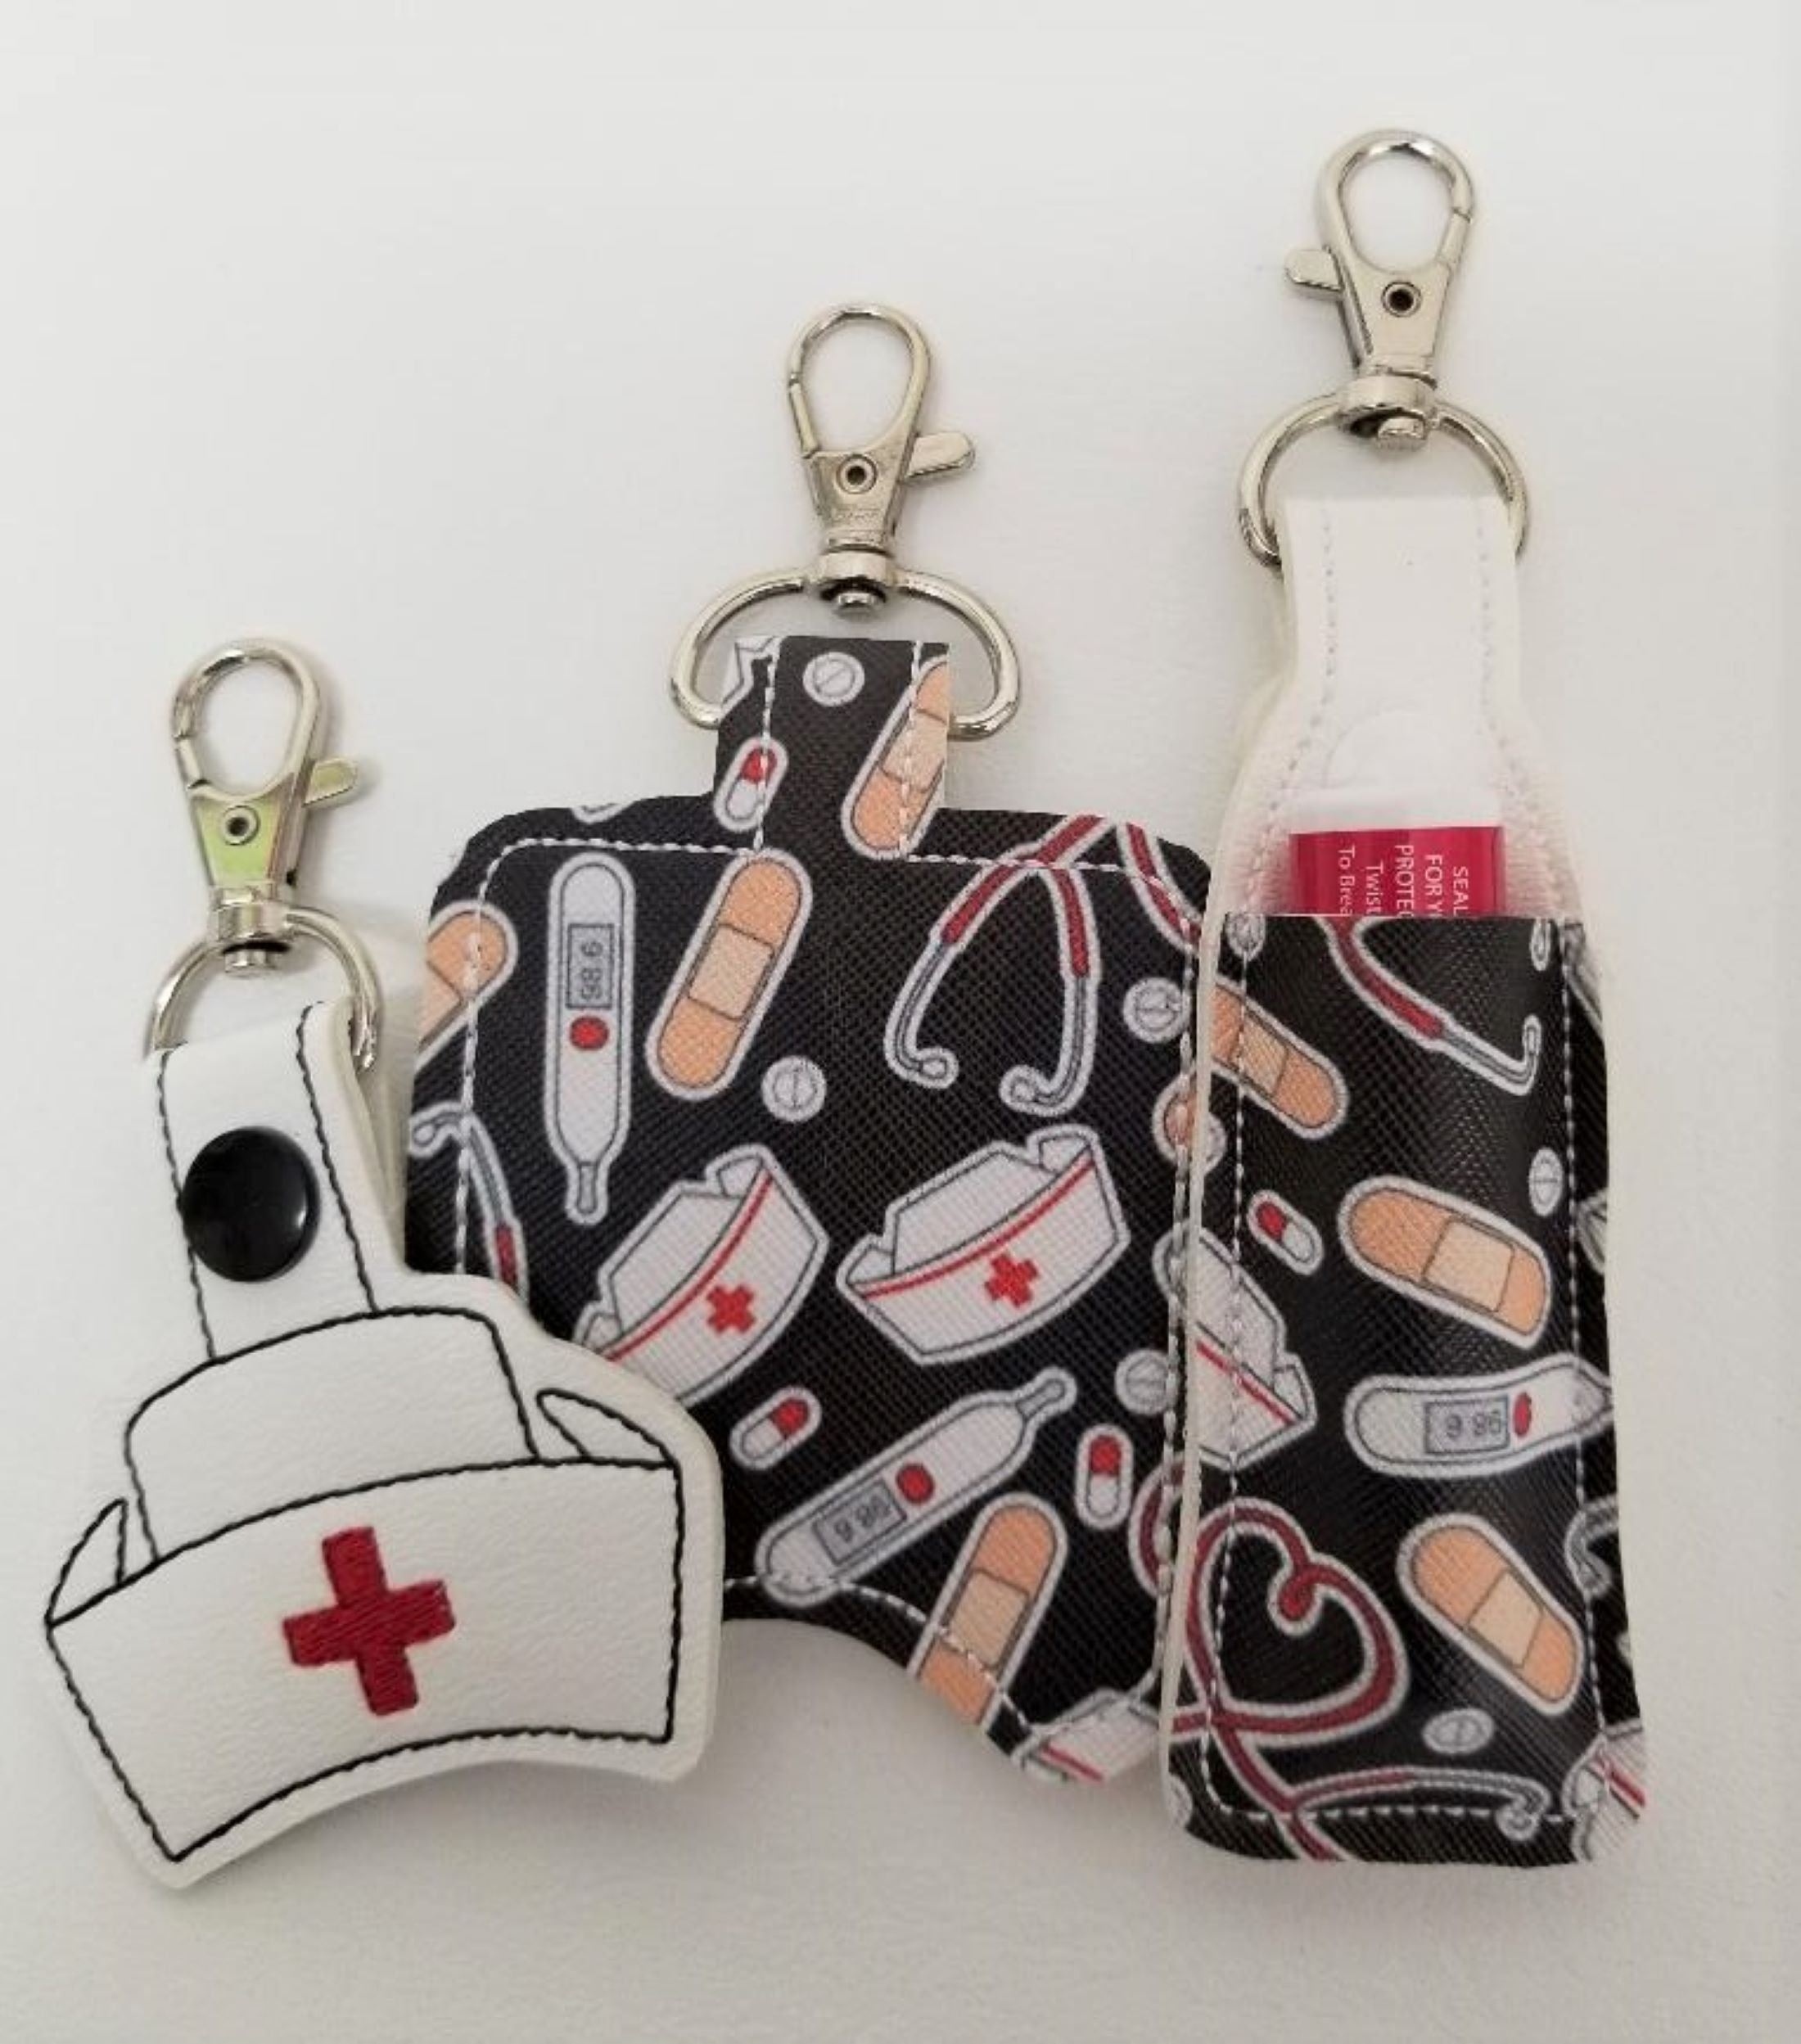 3 Piece Set Nurse Lip Balm Holder Key Chain Tag And Hand